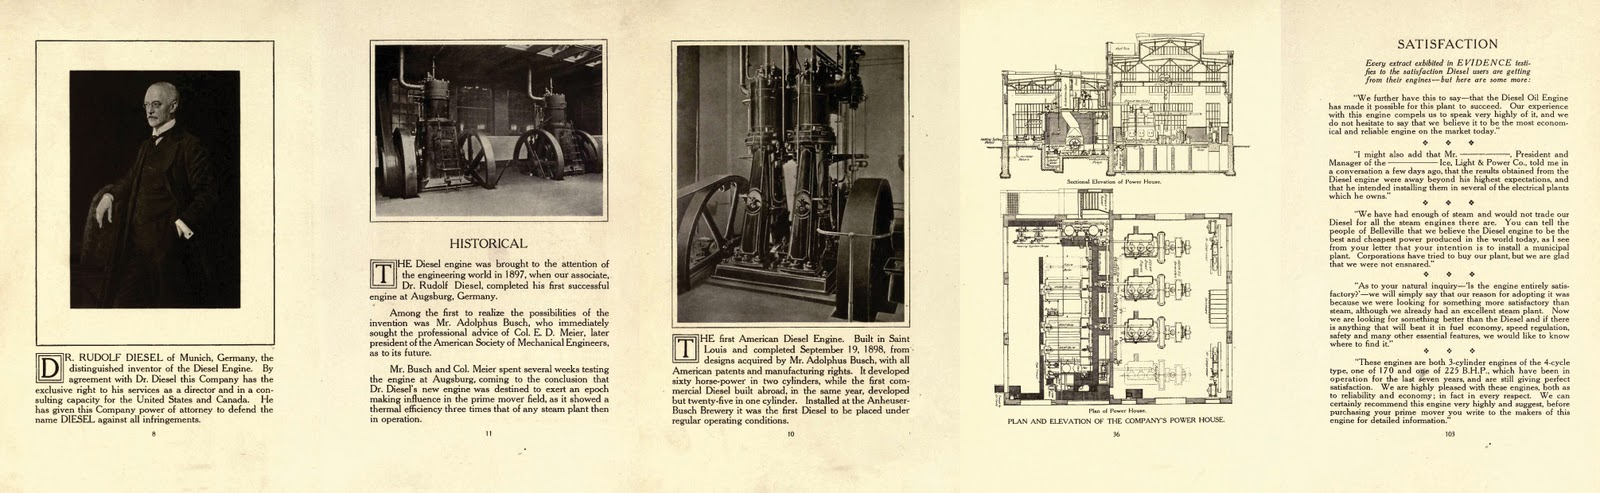 an introduction to the life of rudolph diesel Rudolf diesel: rudolf diesel, german thermal engineer who invented the internal-combustion engine that bears his name he was also a distinguished connoisseur of the arts, a linguist, and a social theorist.